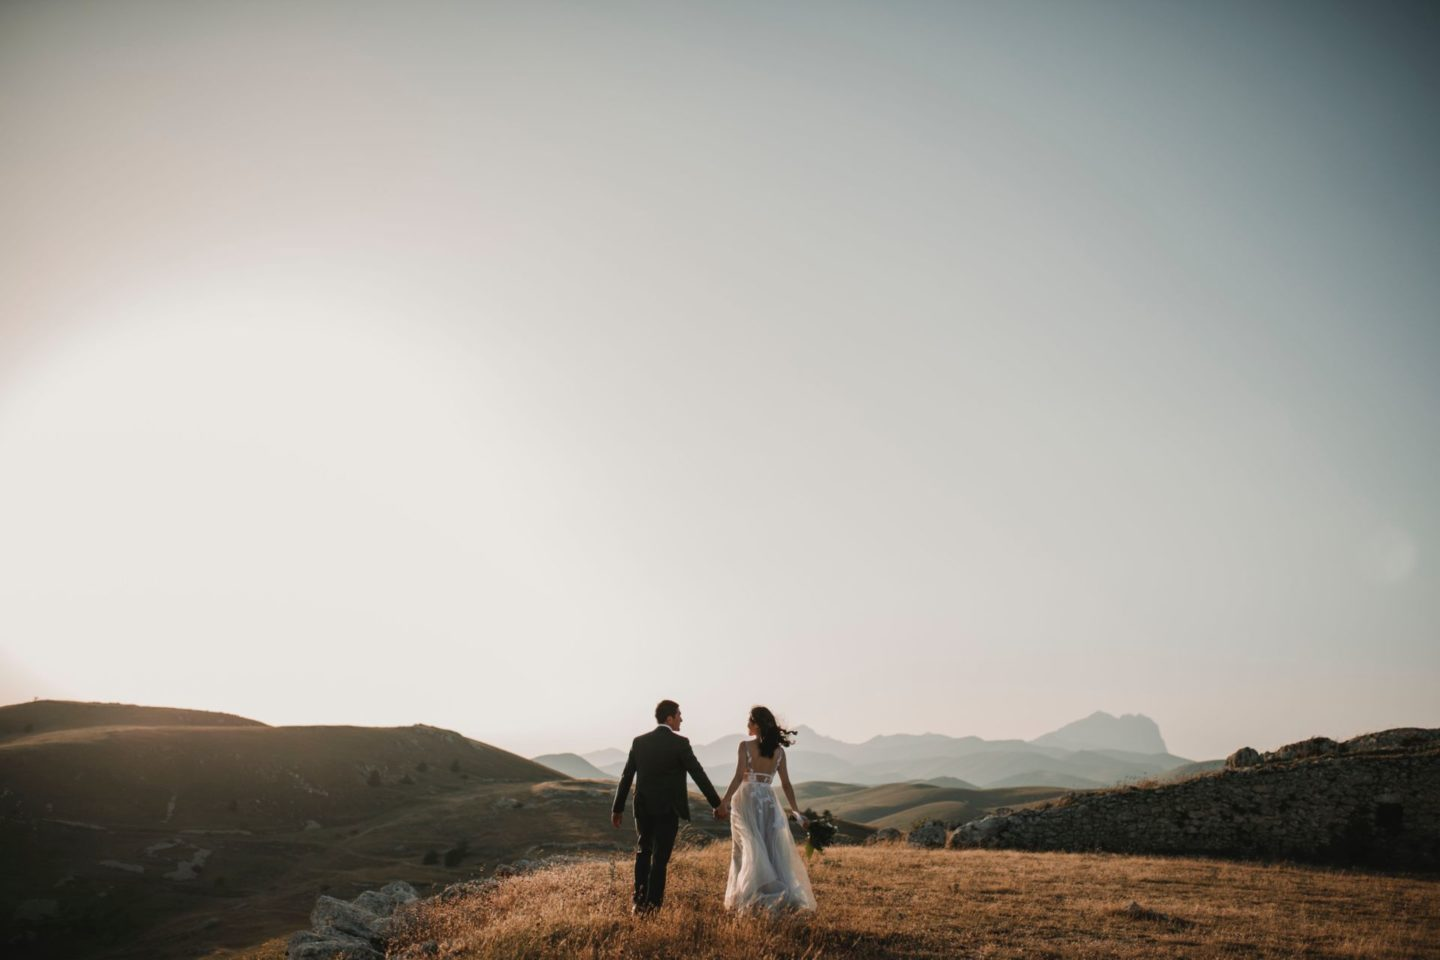 newly wed couple walking away from the camera in a field